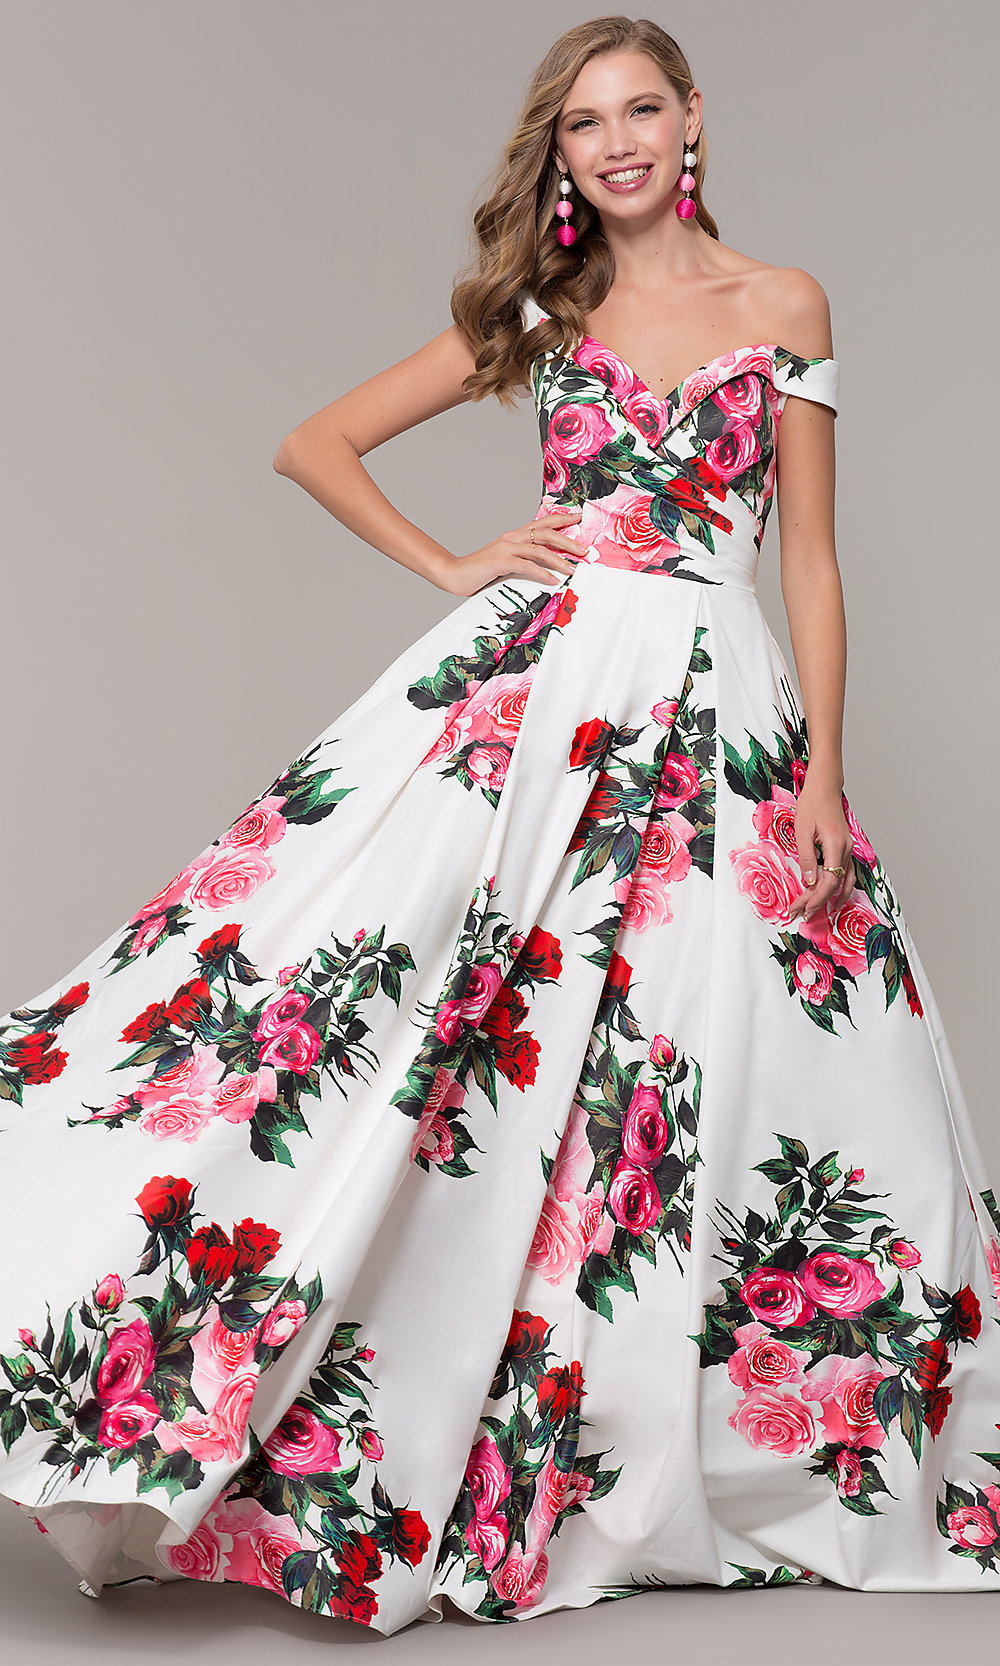 ddfcdcdc8218 JVN by Jovani Off-Shoulder Print Prom Dress - PromGirl